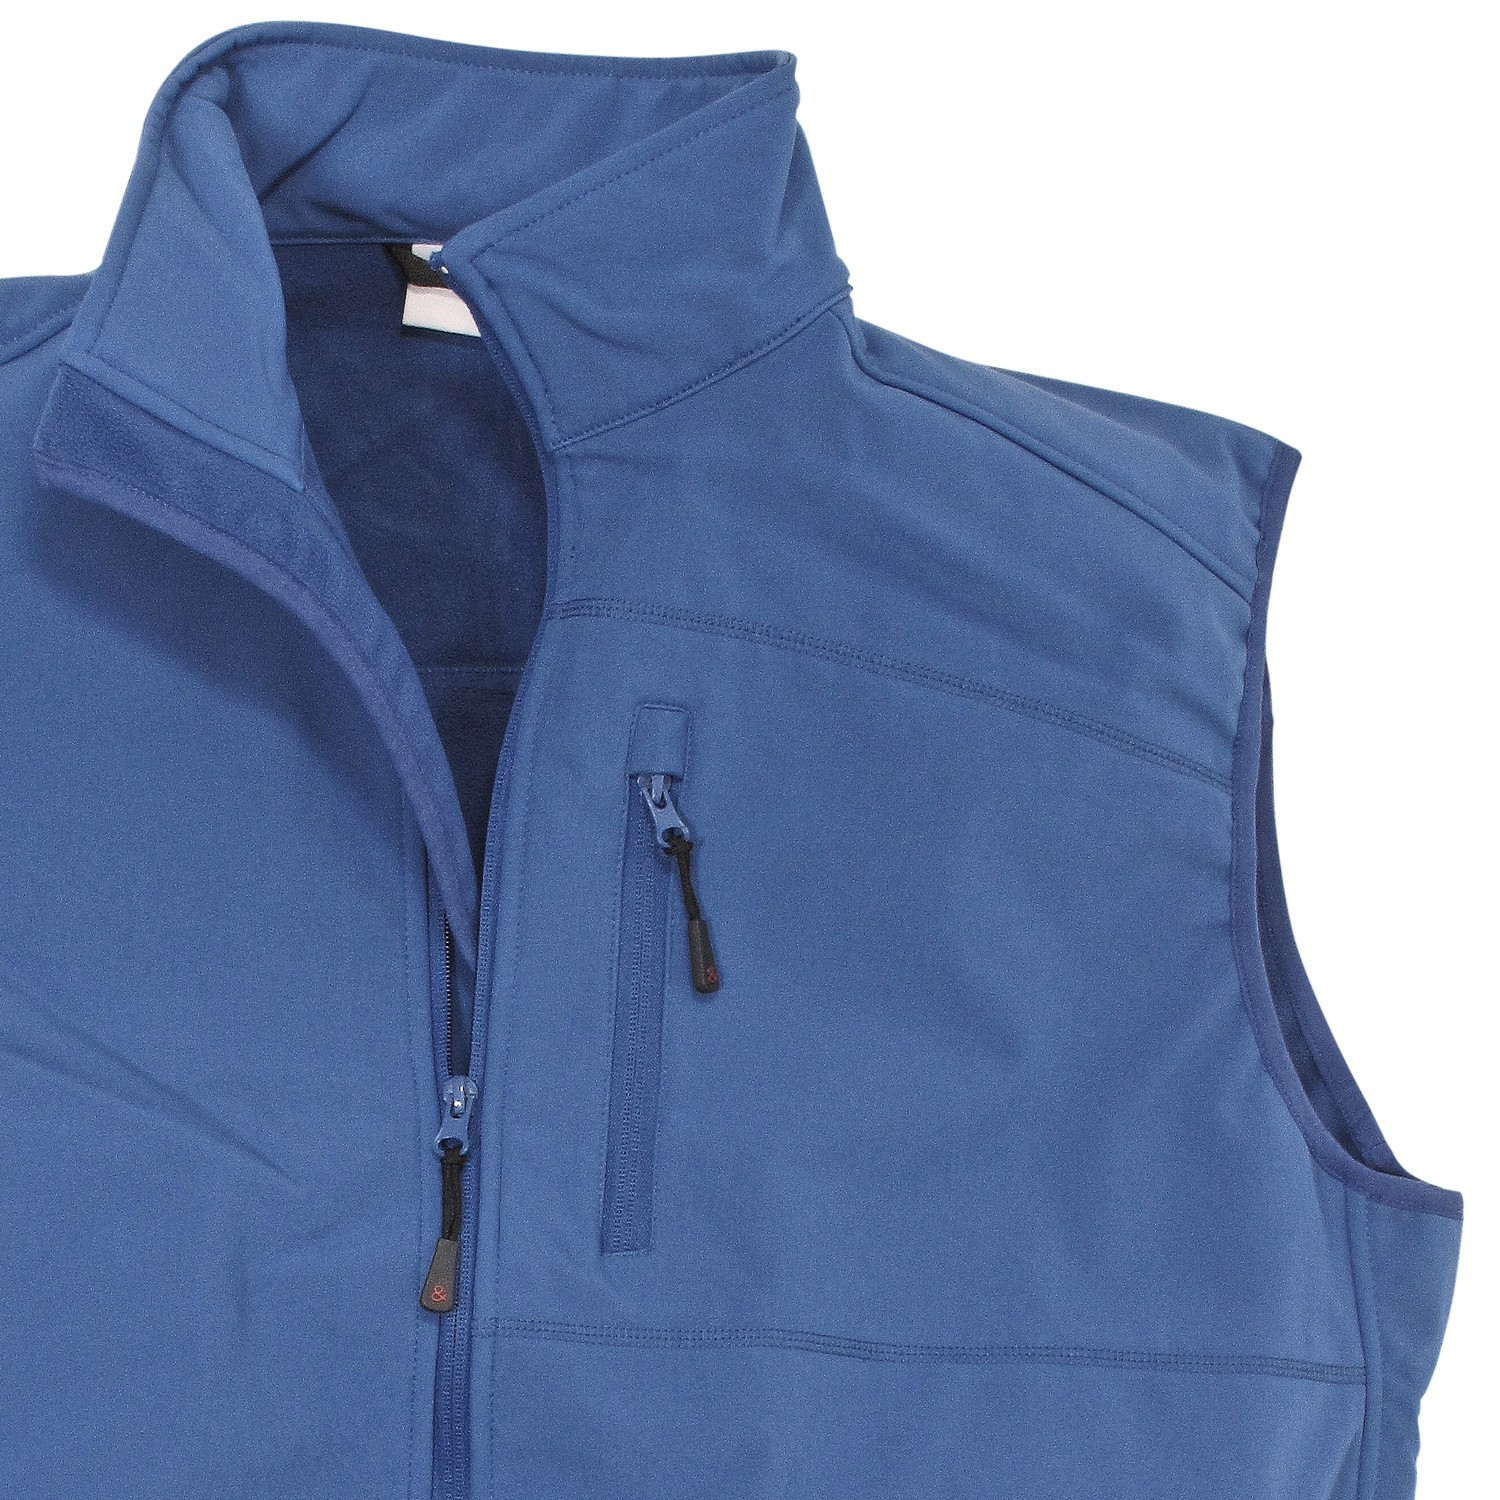 Detail Image to Softshell vest in royal blue by marc&mark in plus sizes up to 10XL